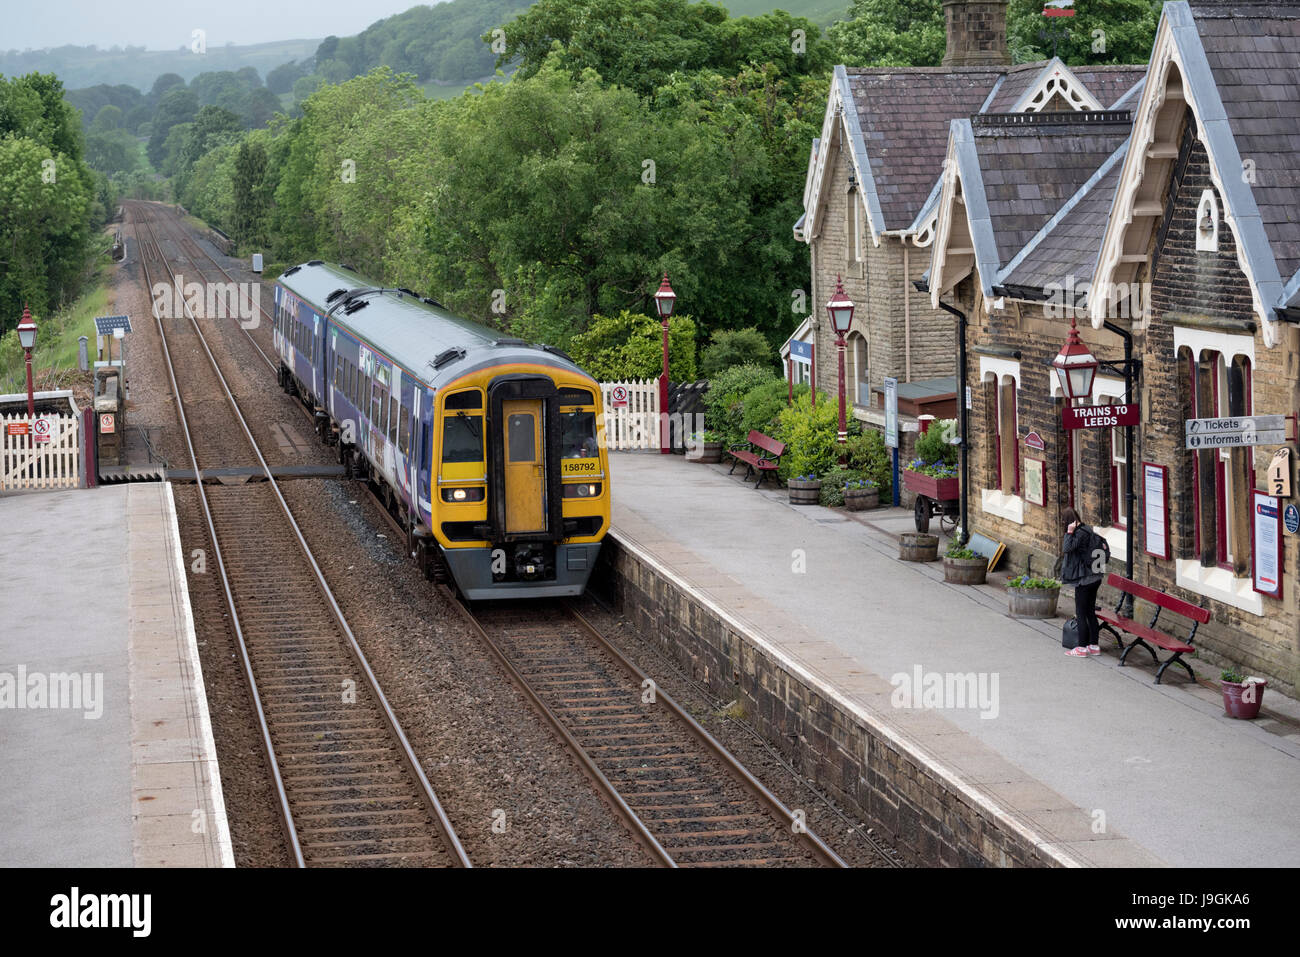 A Sprinter train from Carlisle arriving at Settle station, North Yorkshire, en route to Leeds, UK. - Stock Image